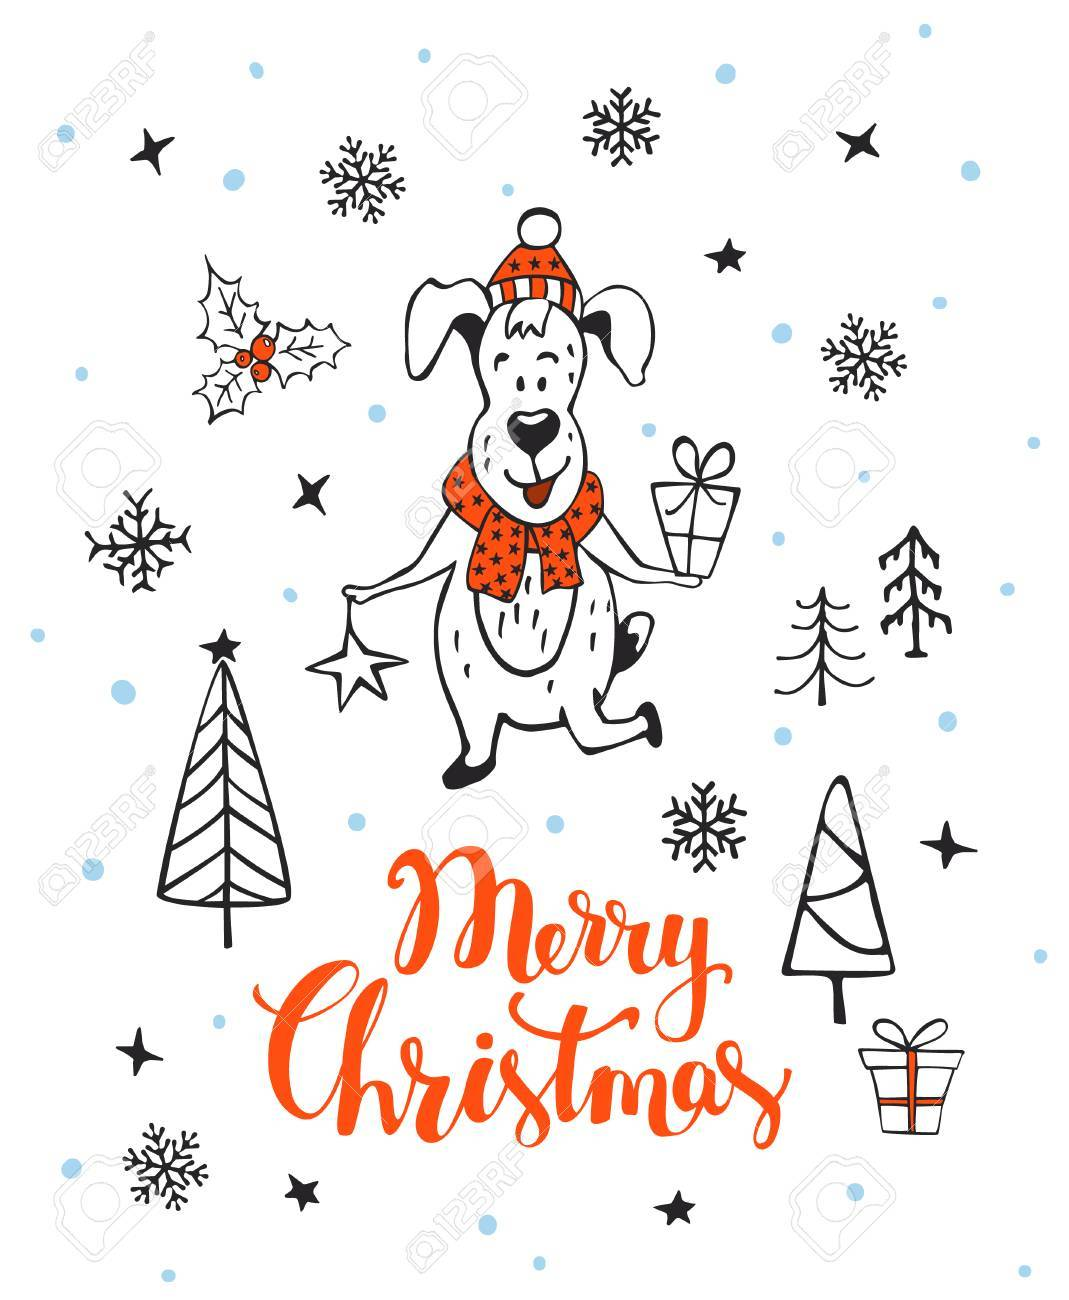 hand drawn merry christmas happy new year 2018 winter greeting card background with cute cartoon dog